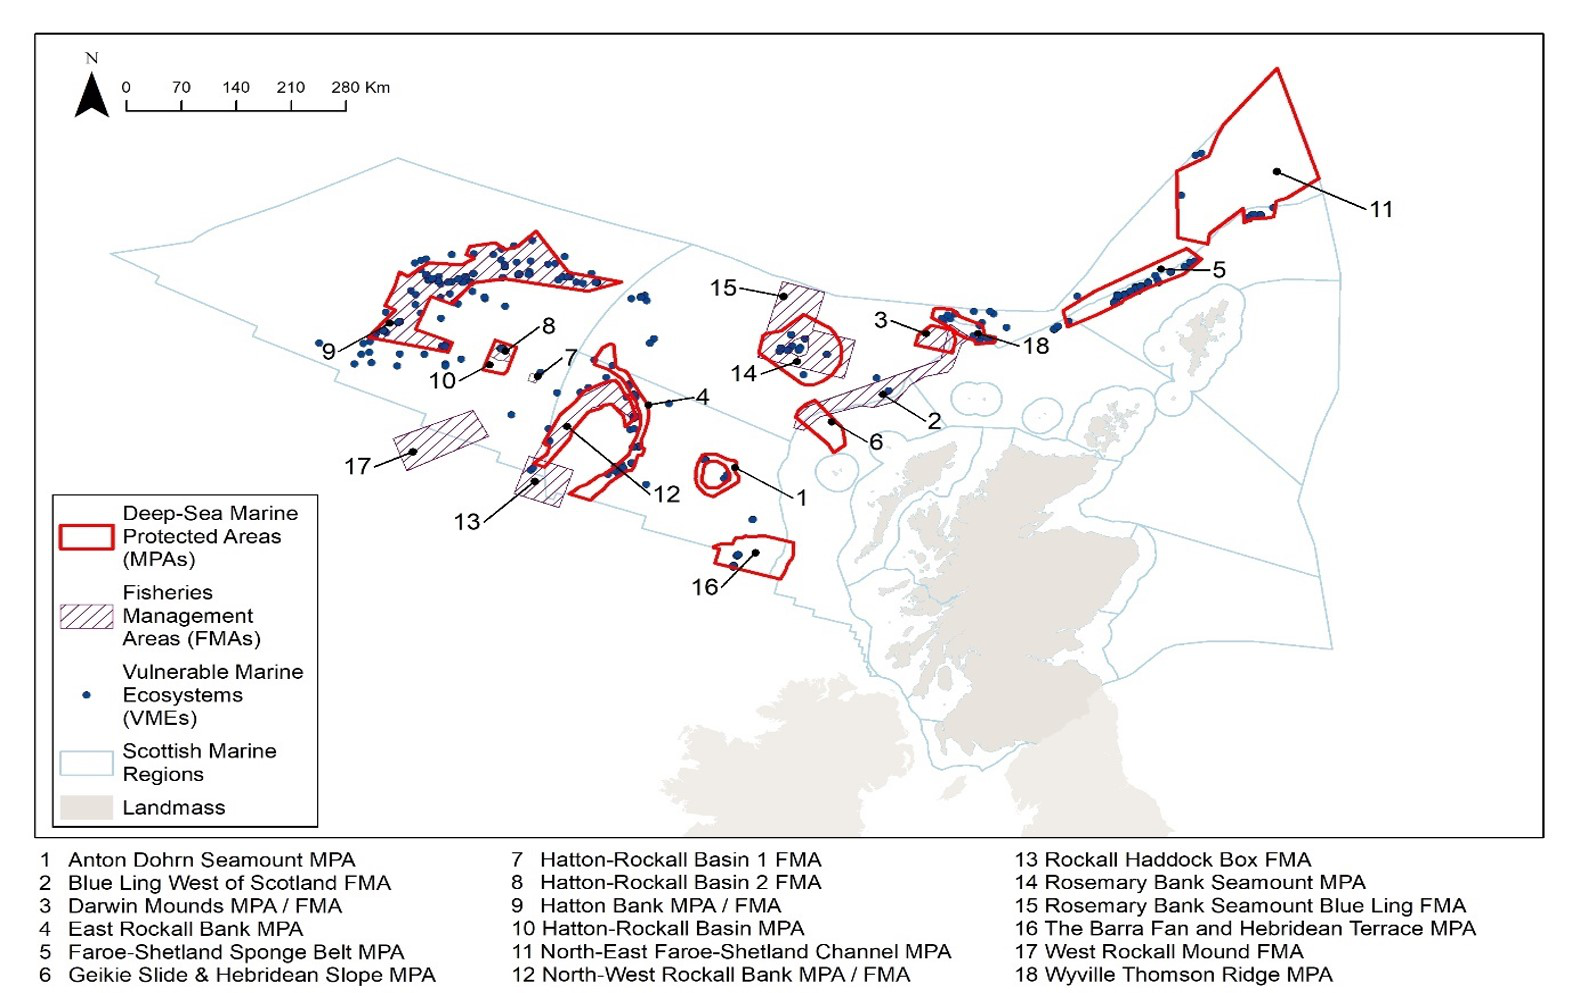 Figure 10. Distribution of Deep-sea Marine Protected Areas (MPAs) with Vulnerable Marine Ecosystems (VMEs), in Scottish waters, in 2018.